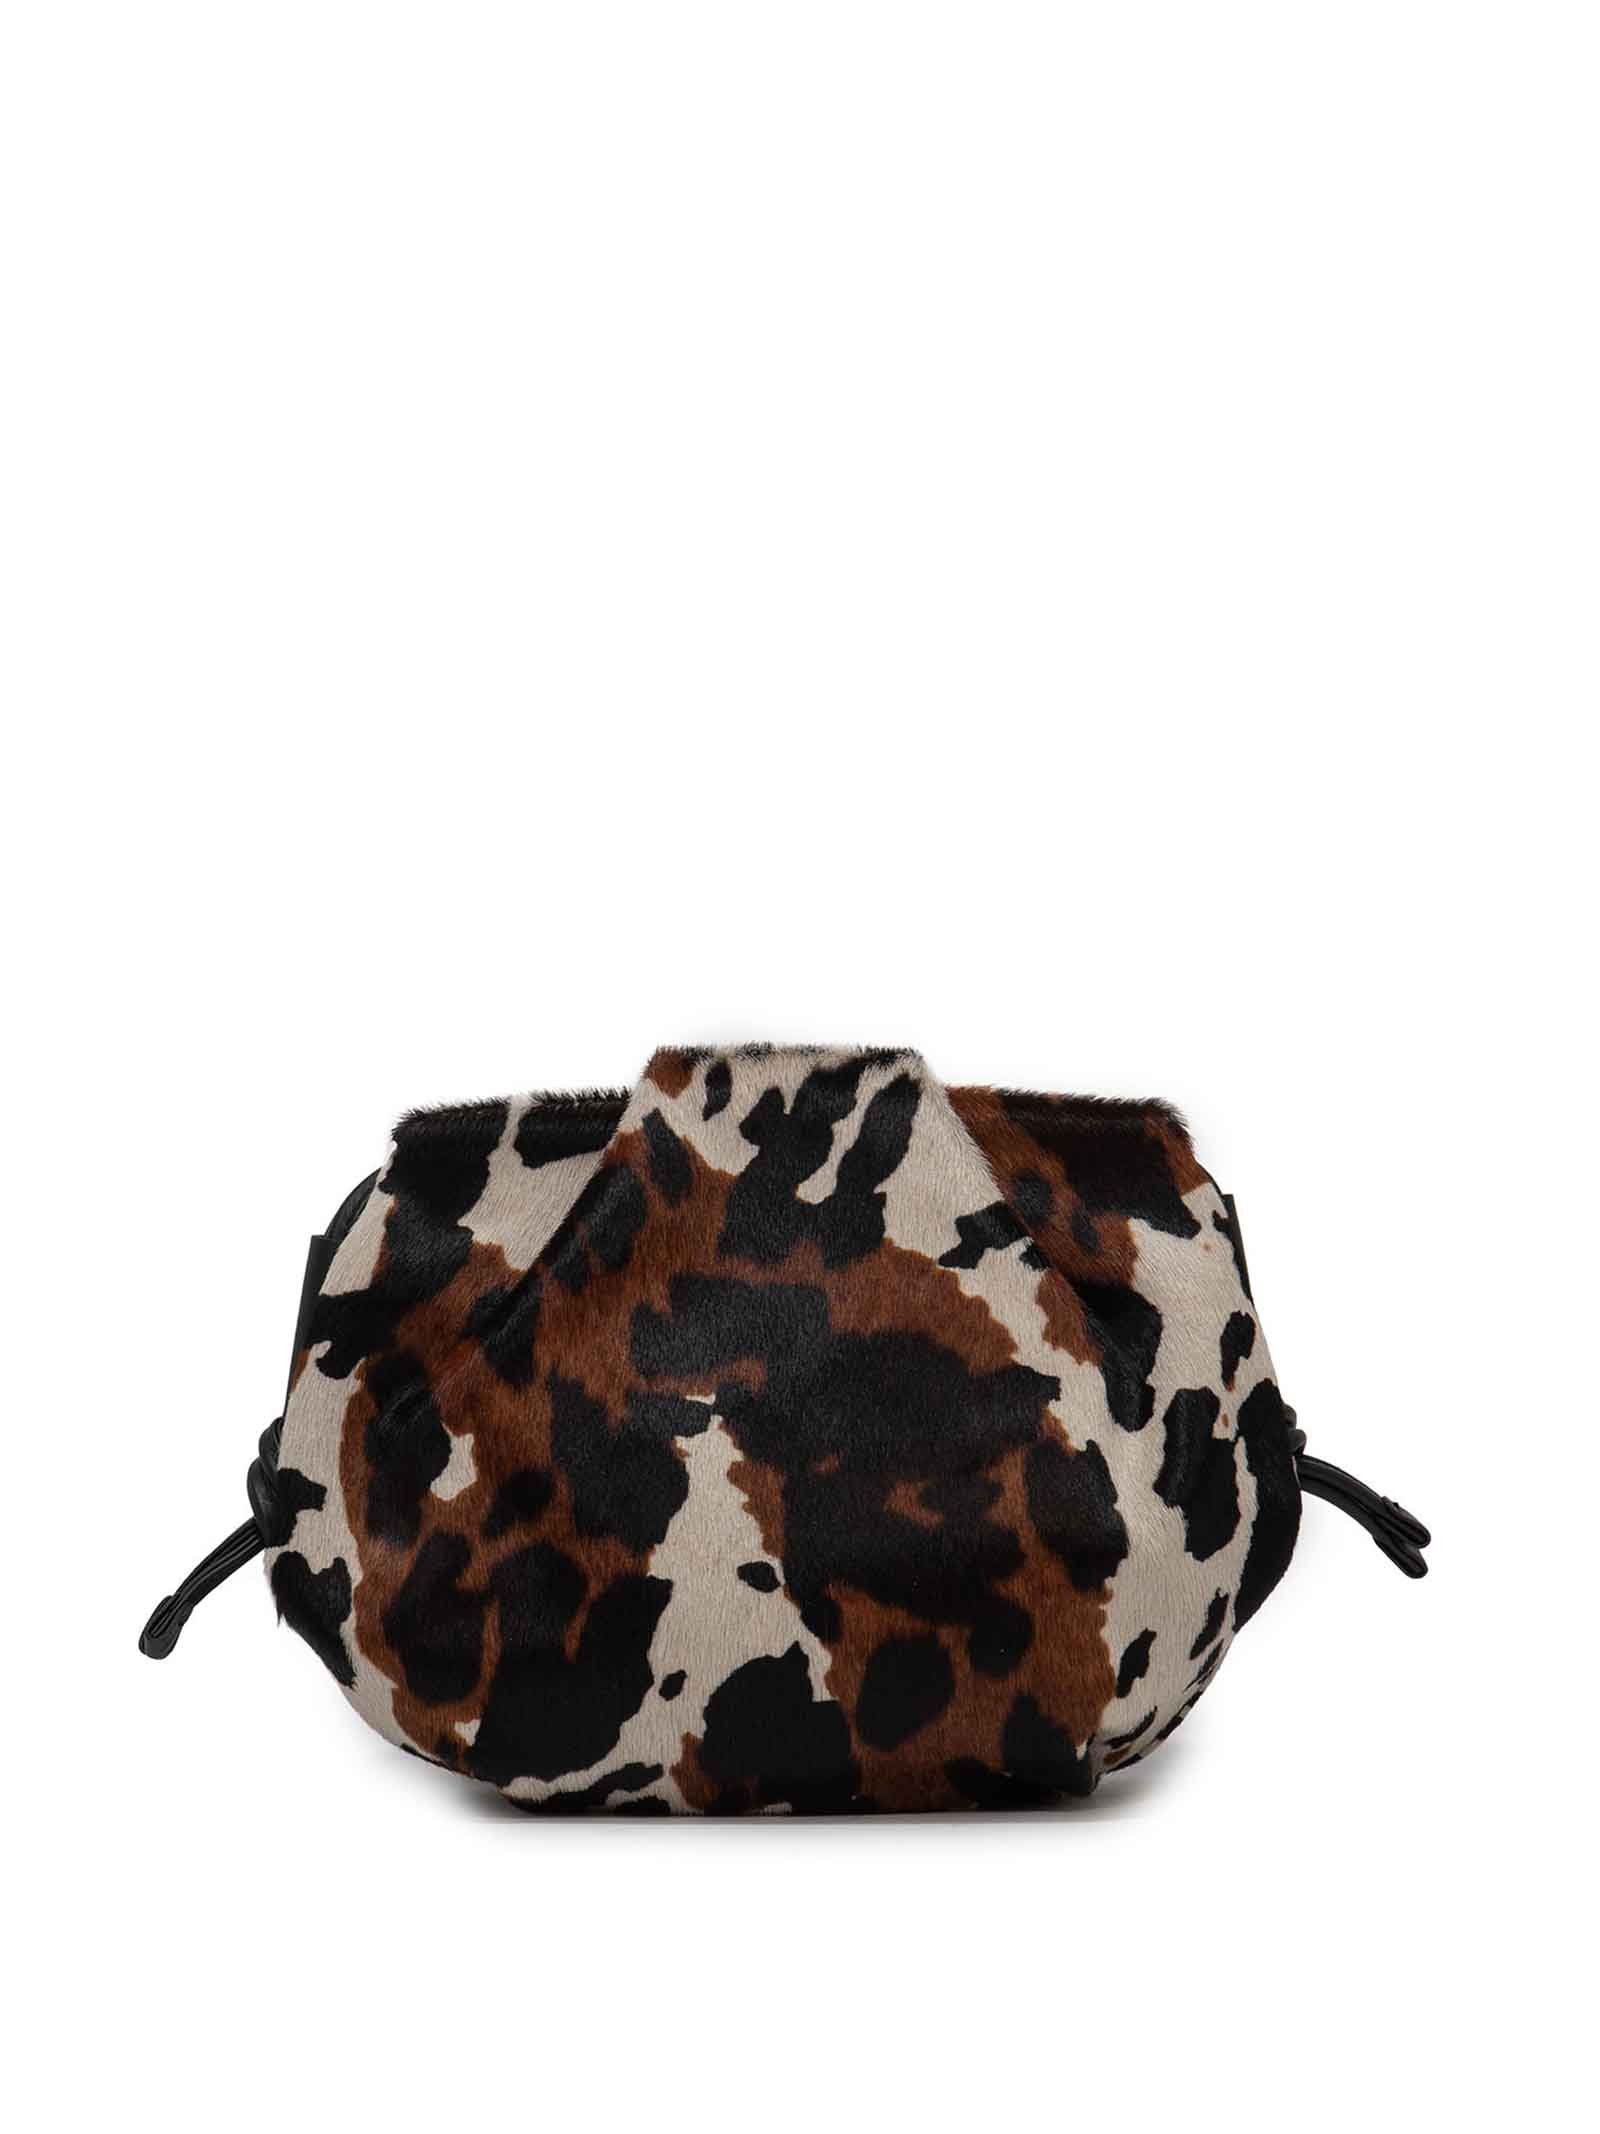 Women's Shoulder Bag Flora in Pony Print Cow Leather with Black Leather Tassels and Adjustable Leather Shoulder Strap Gianni Chiarini | Bags and backpacks | BS847512181